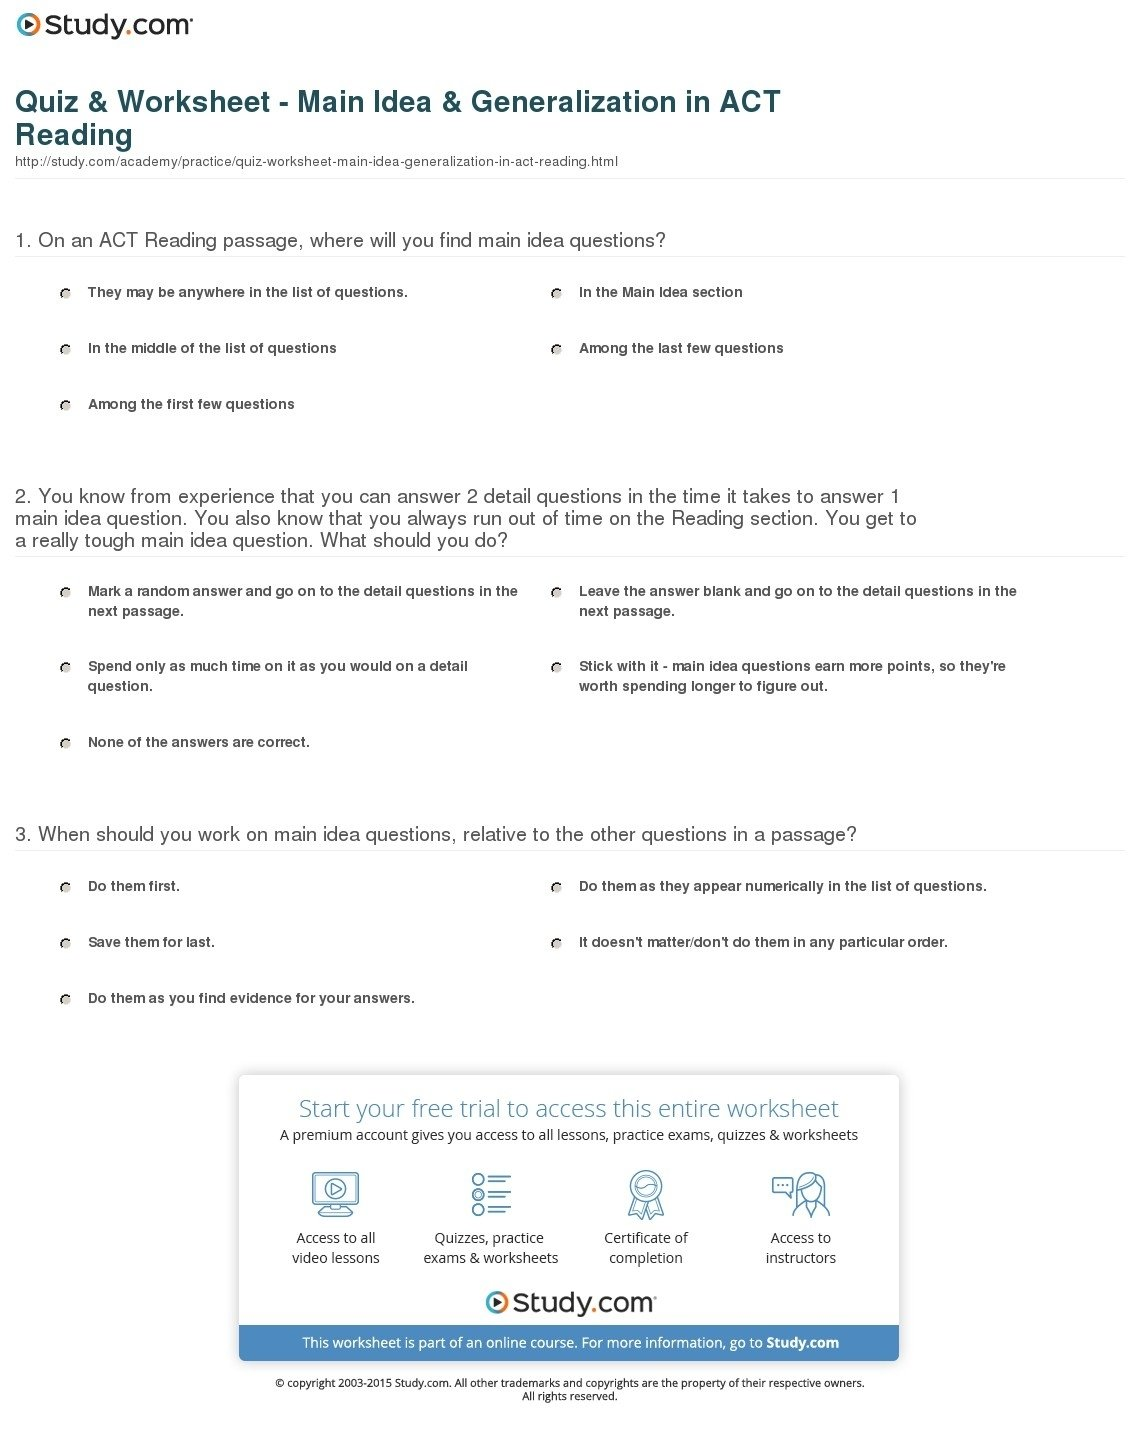 10 Pretty Short Passages For Main Idea quiz worksheet main idea generalization in act reading study 2021